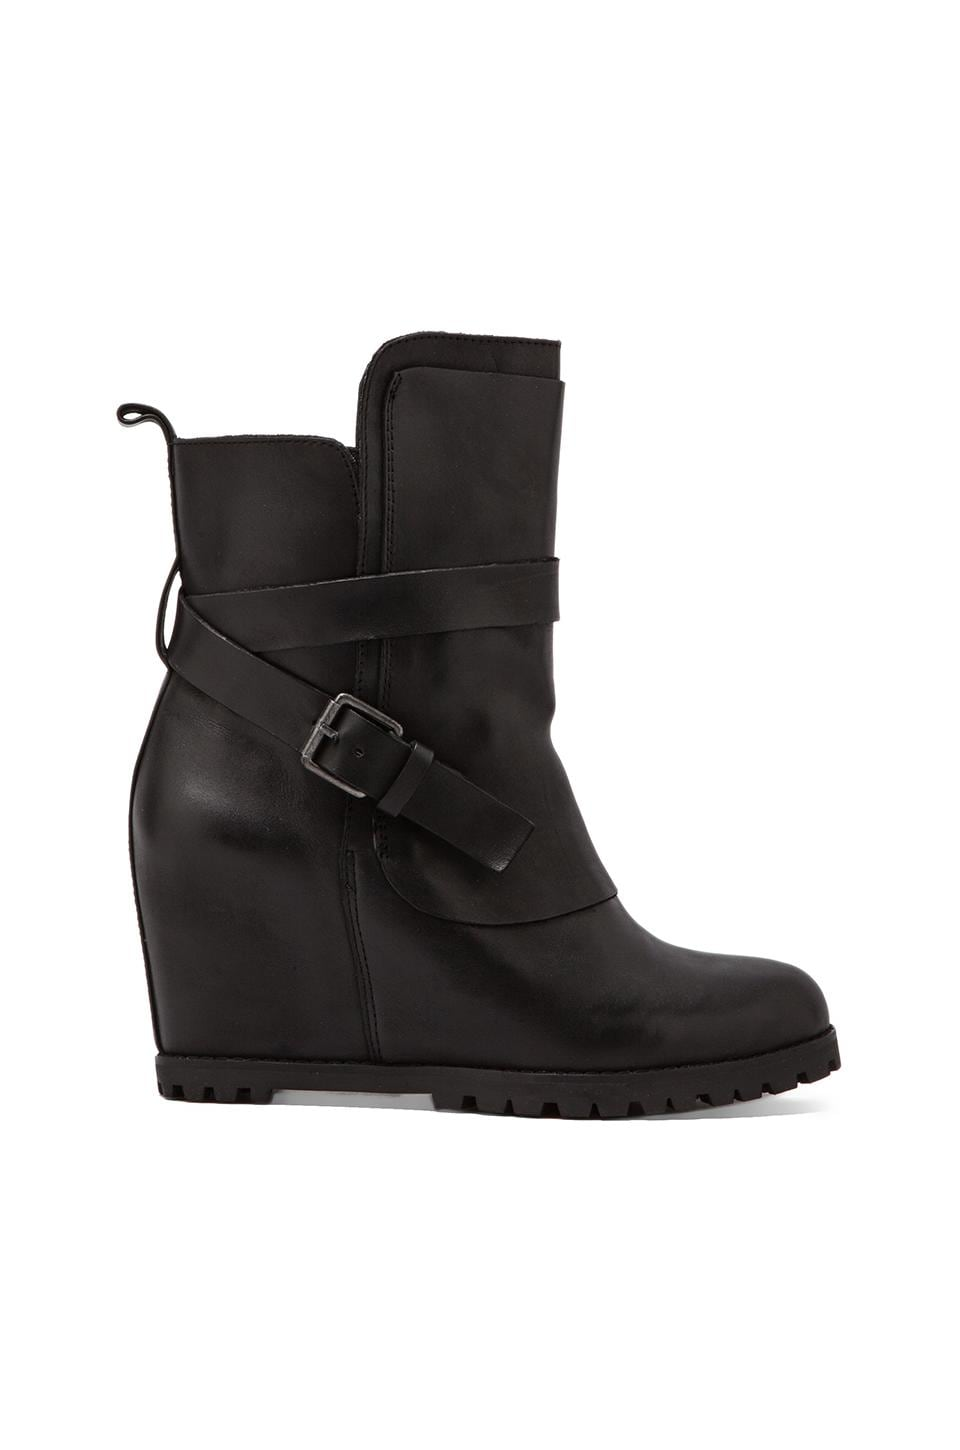 Kelsi Dagger Vina Boot in Black